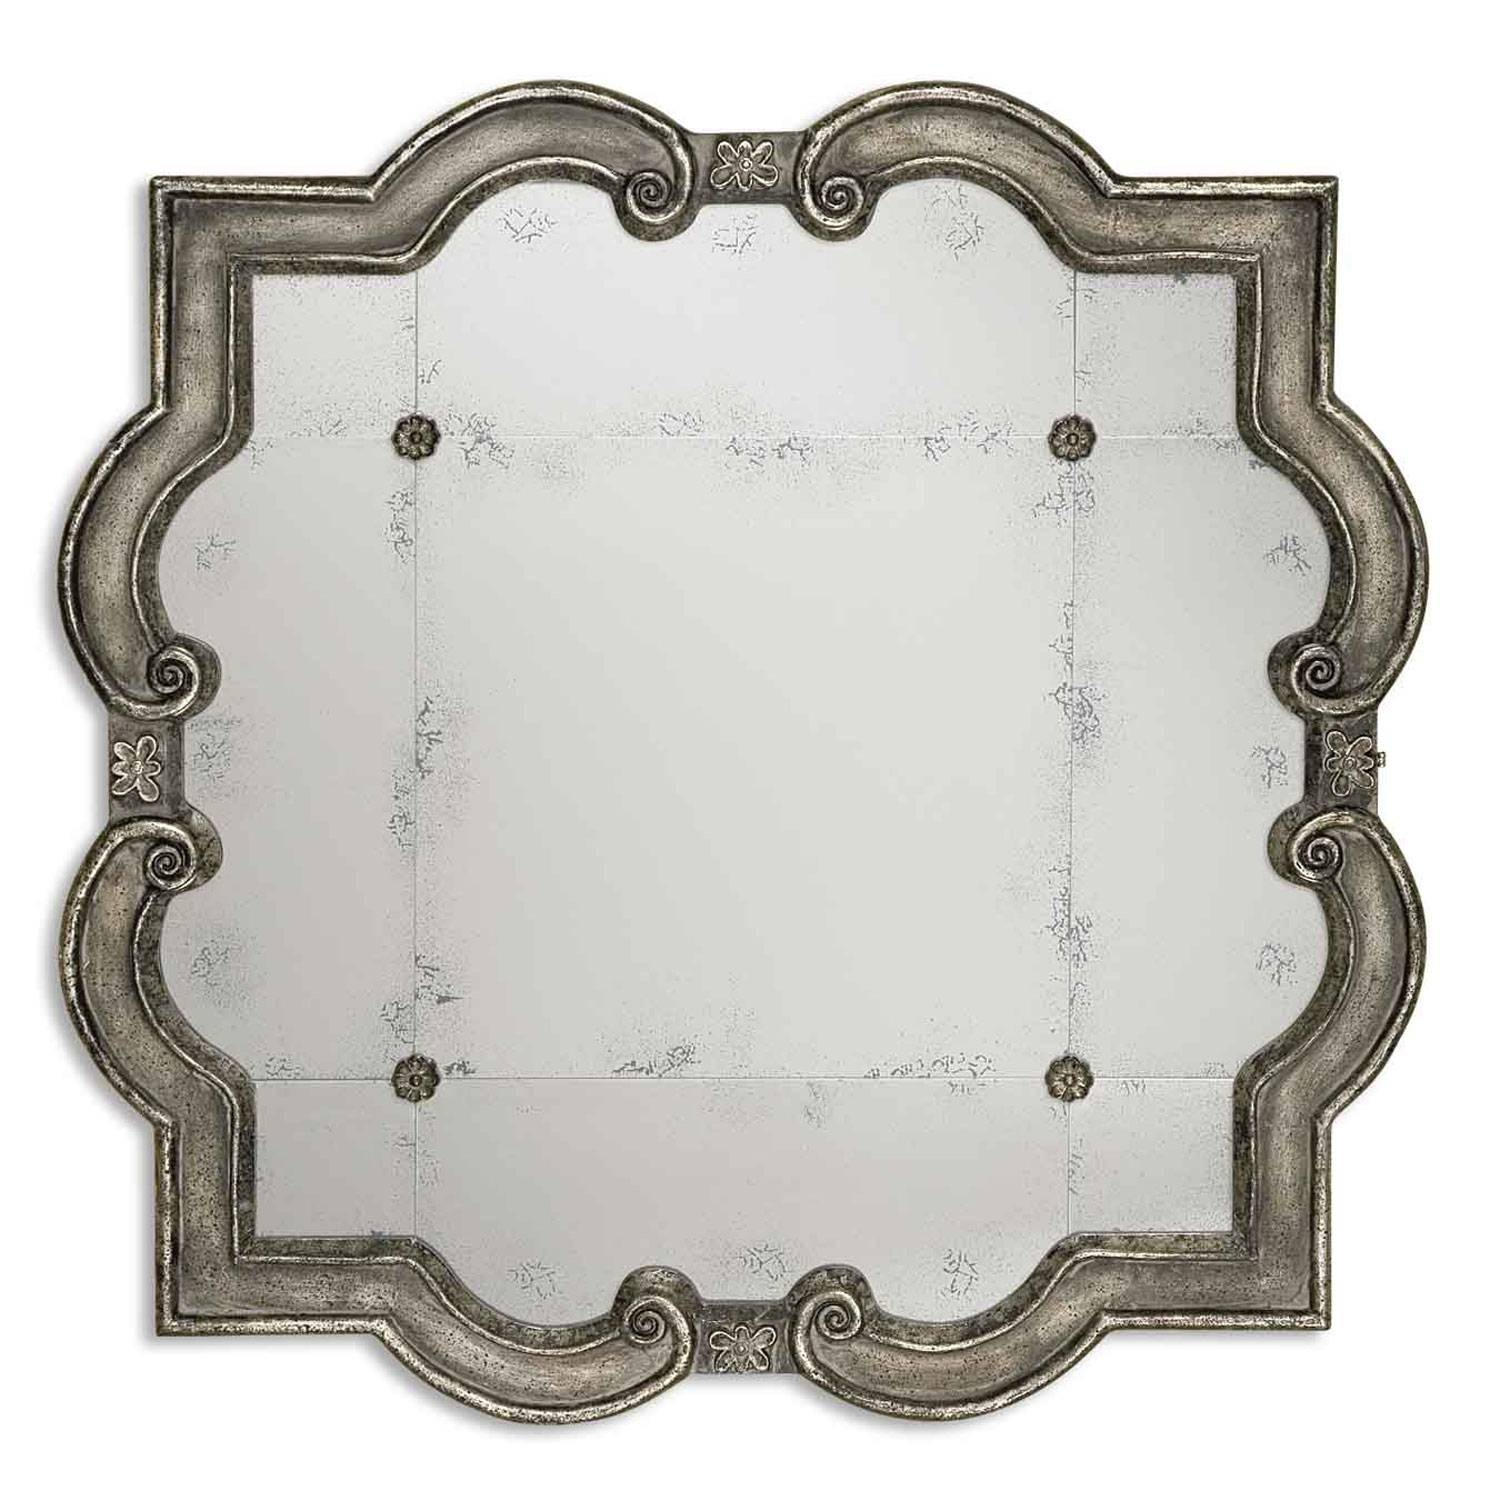 Prisca Small Mirror Uttermost Wall Mirror Mirrors Home Decor throughout Small Antique Mirrors (Image 20 of 25)